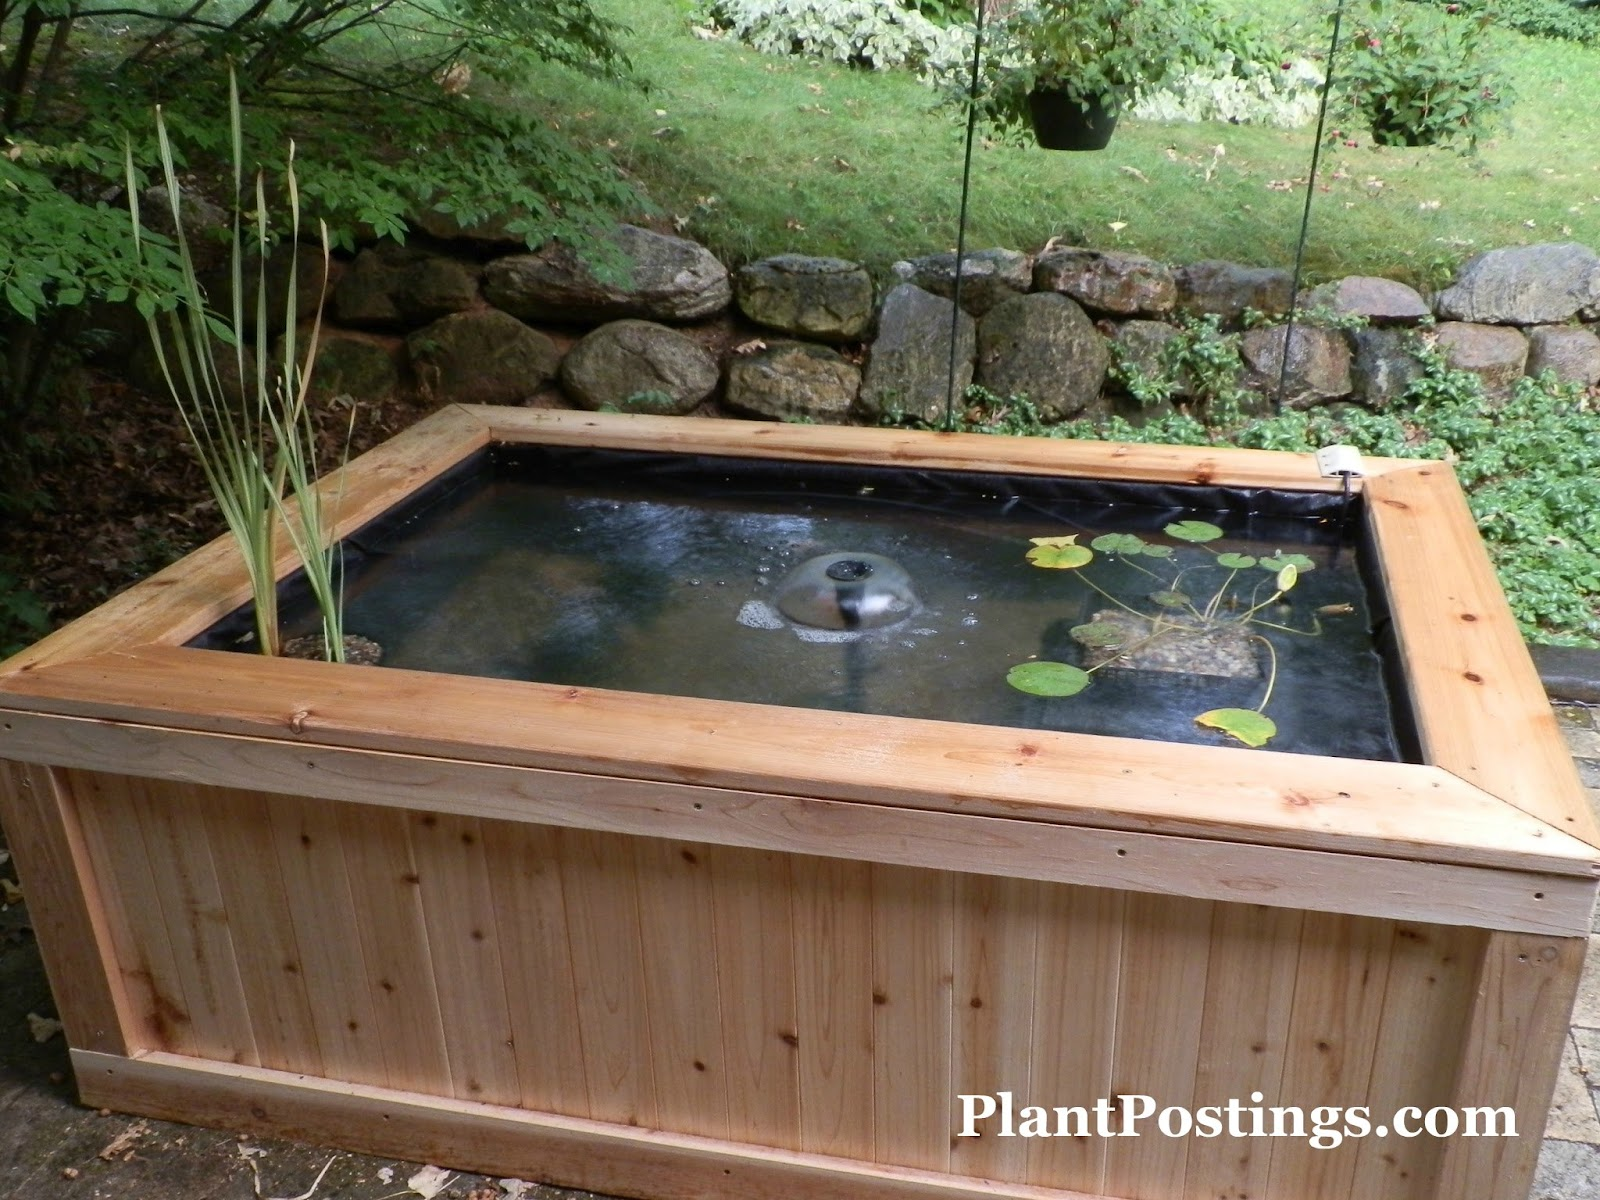 Plantpostings how to make an above ground pond for How to build a koi pond above ground